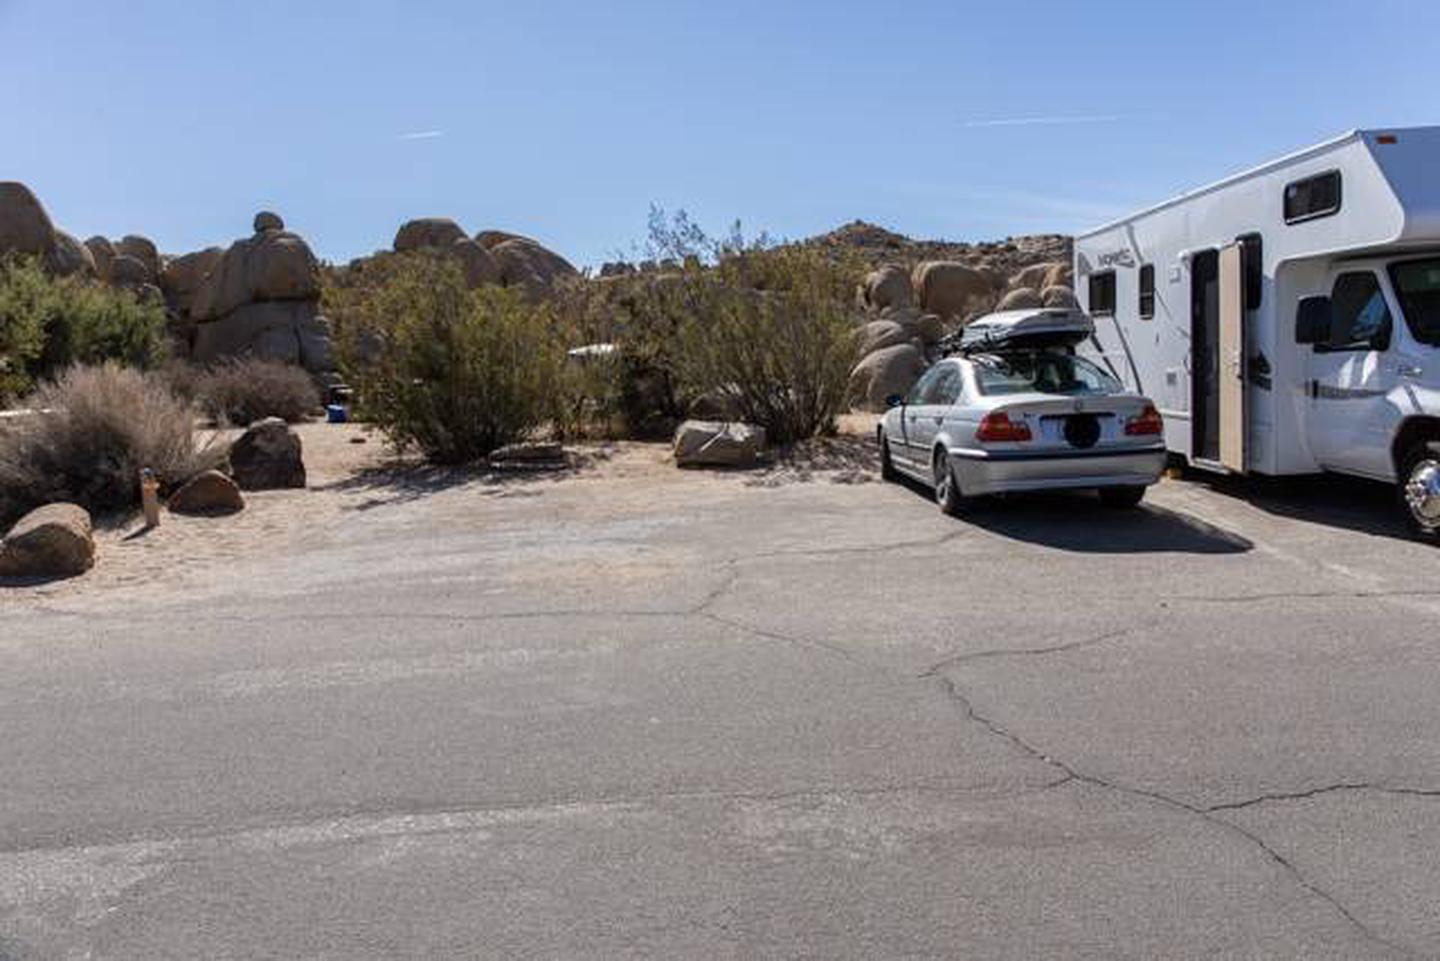 Jumbo Rocks site 66Parking space for campsite